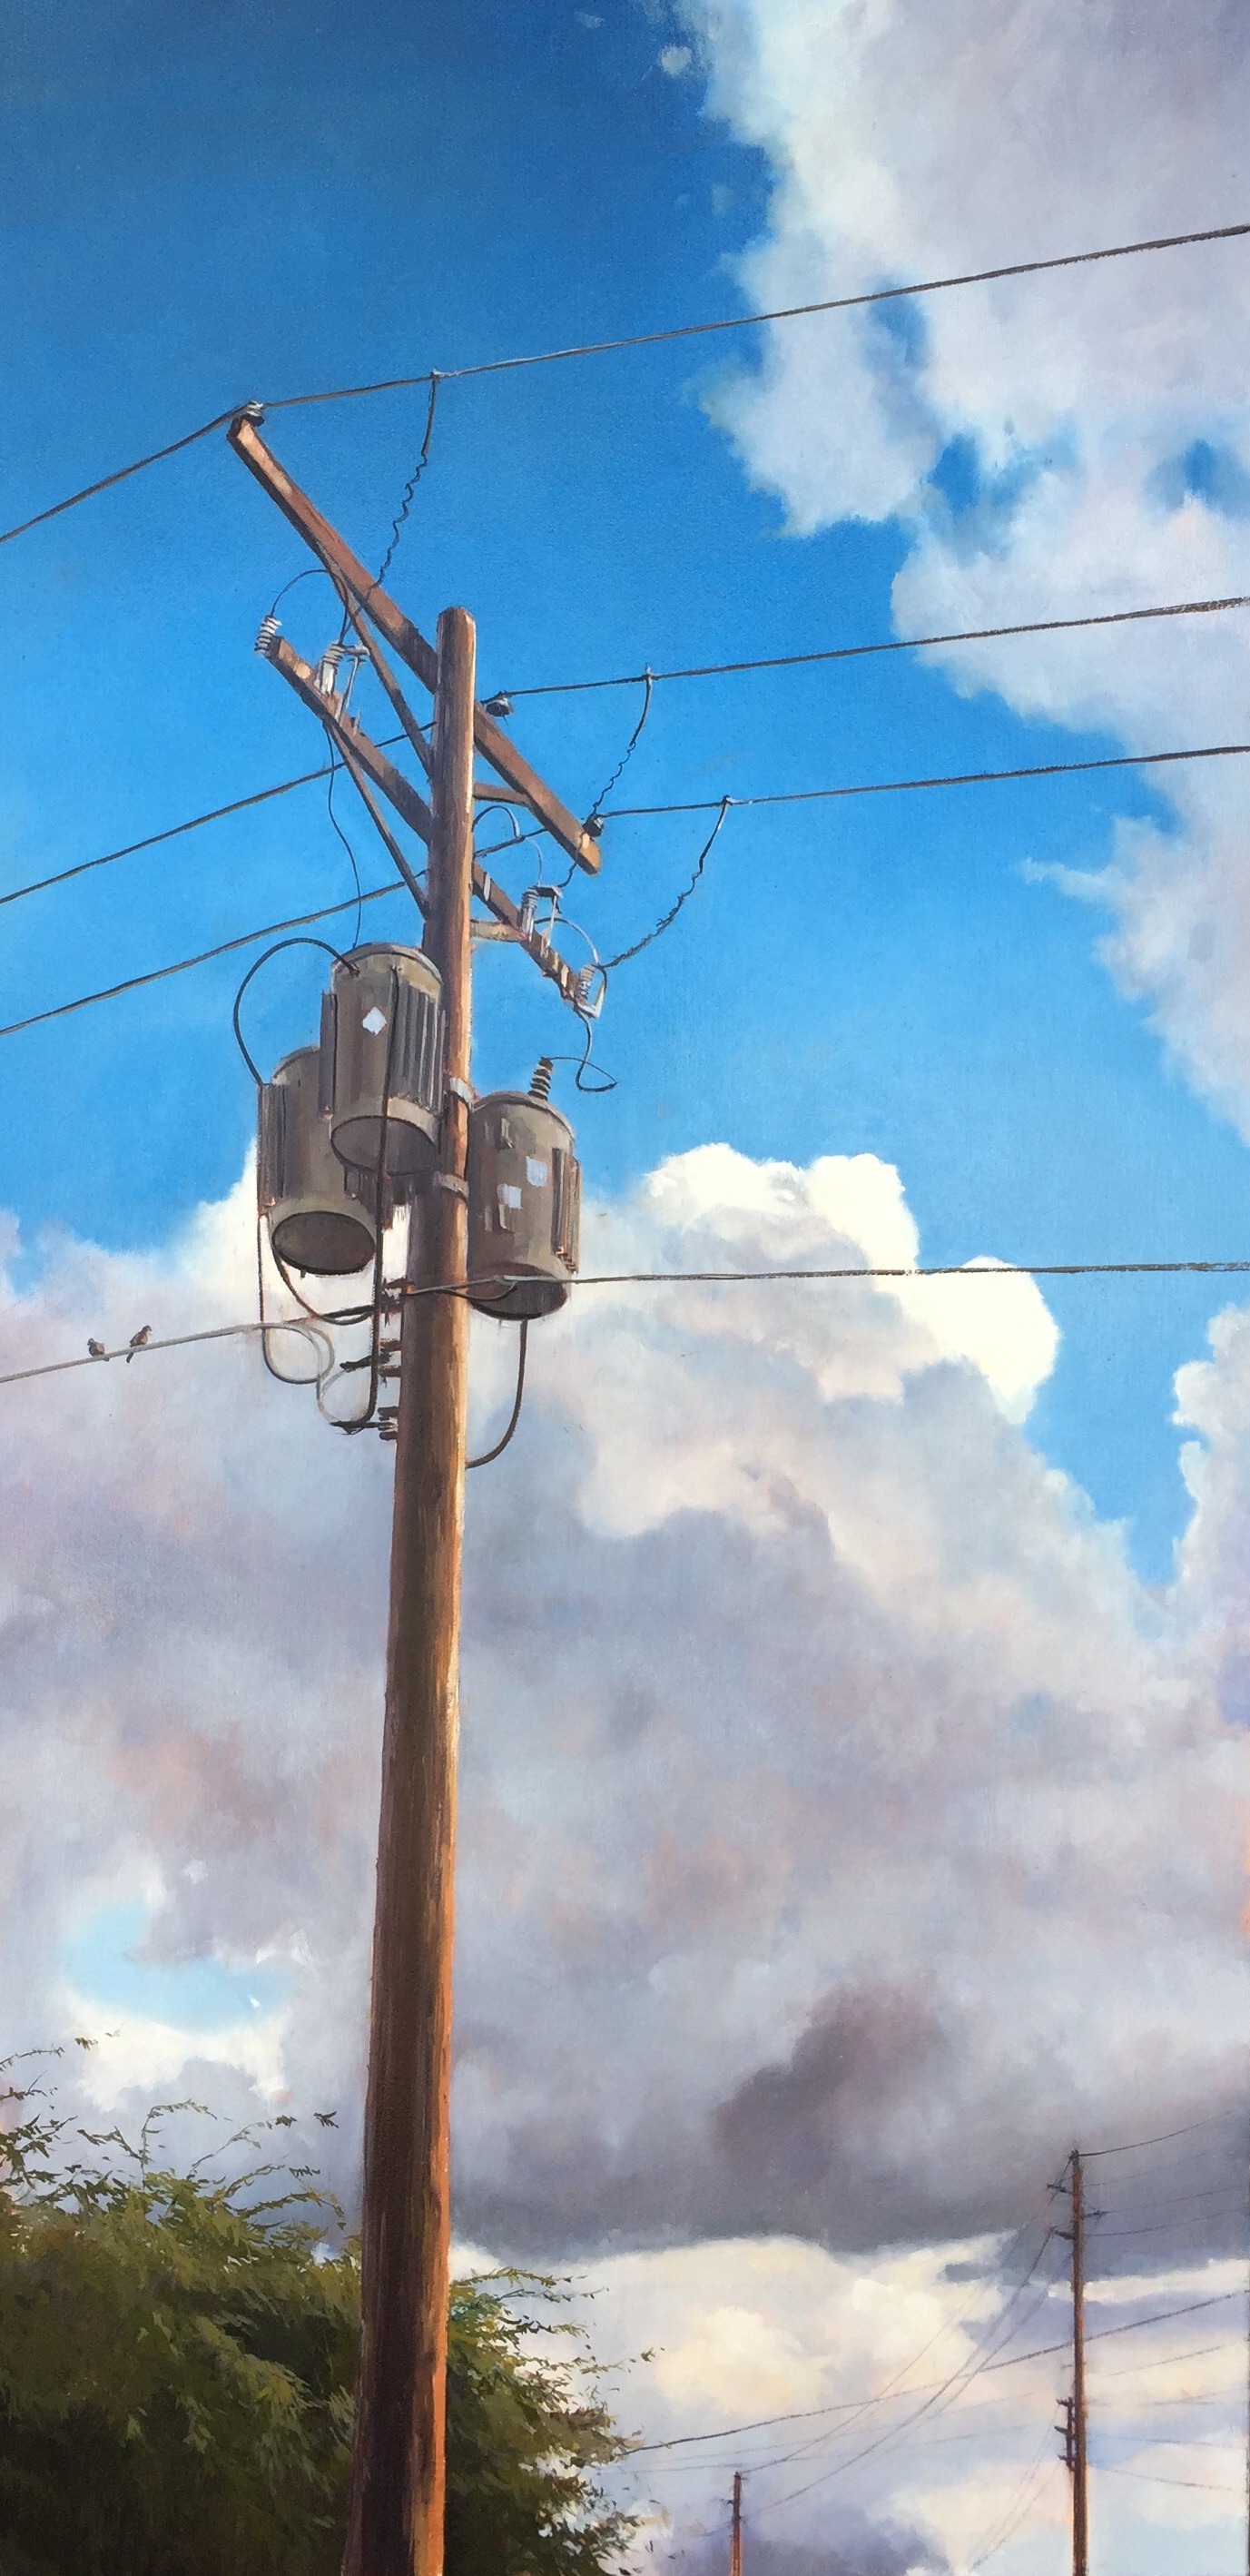 Clouds and Power